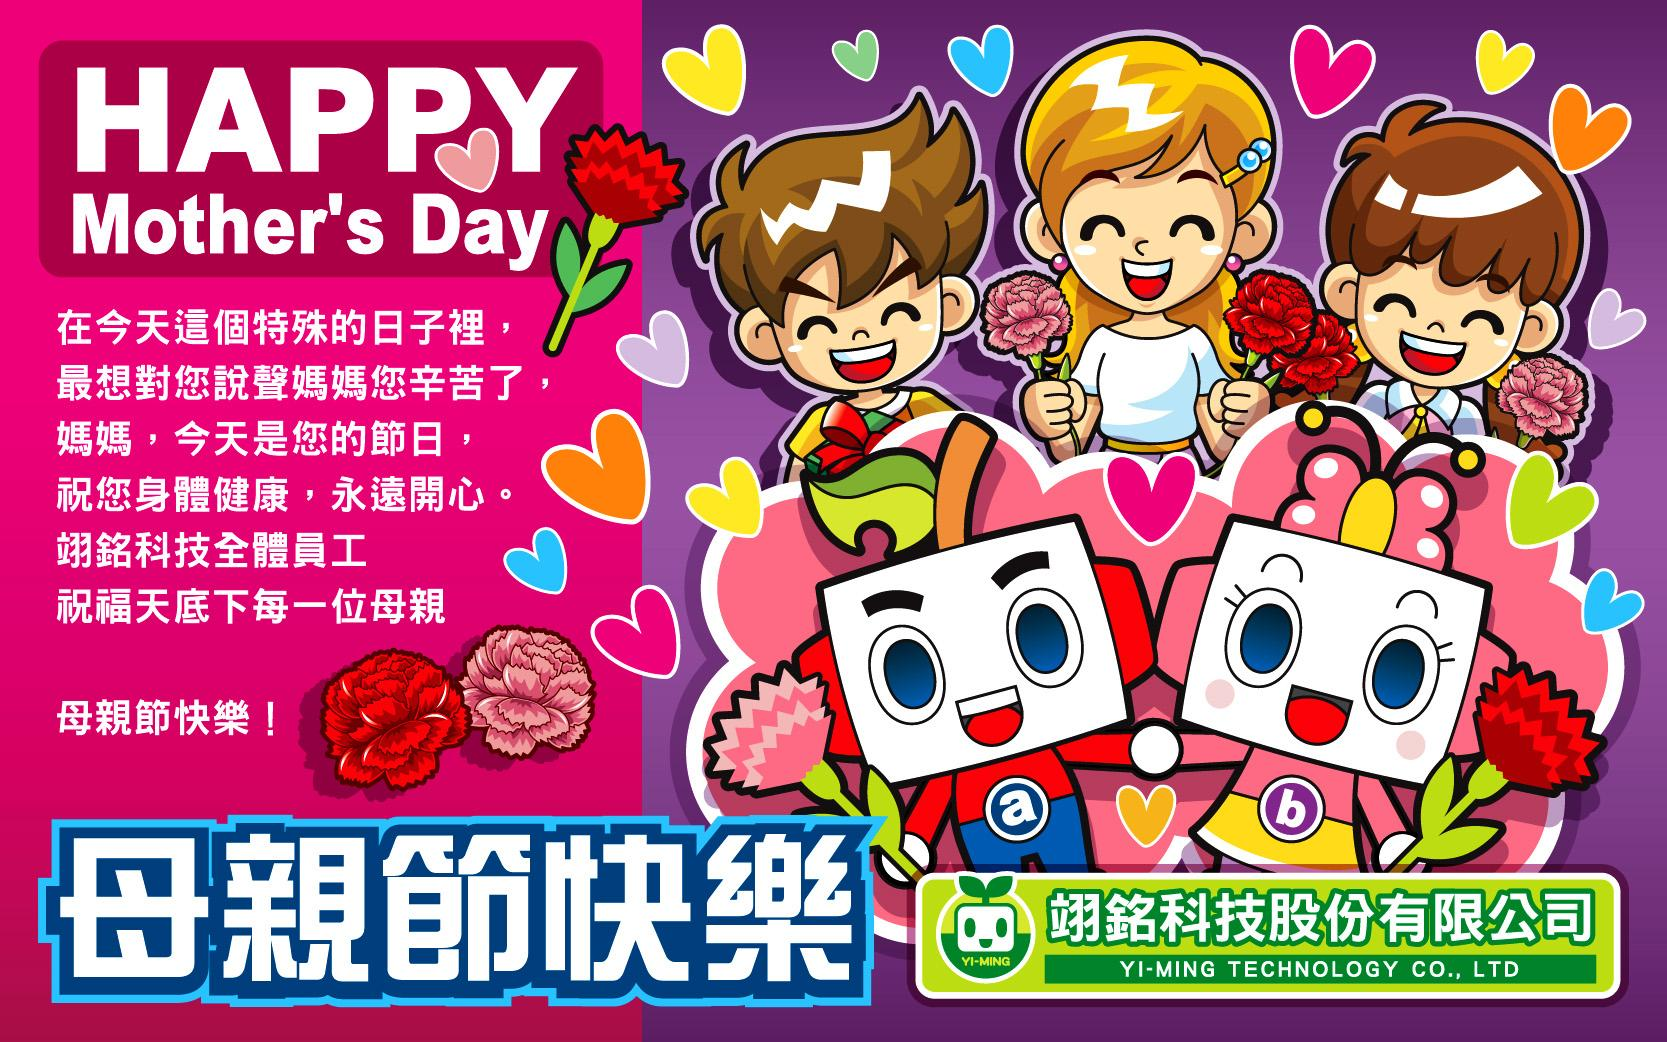 母親節快樂!Happy Mother's Day!